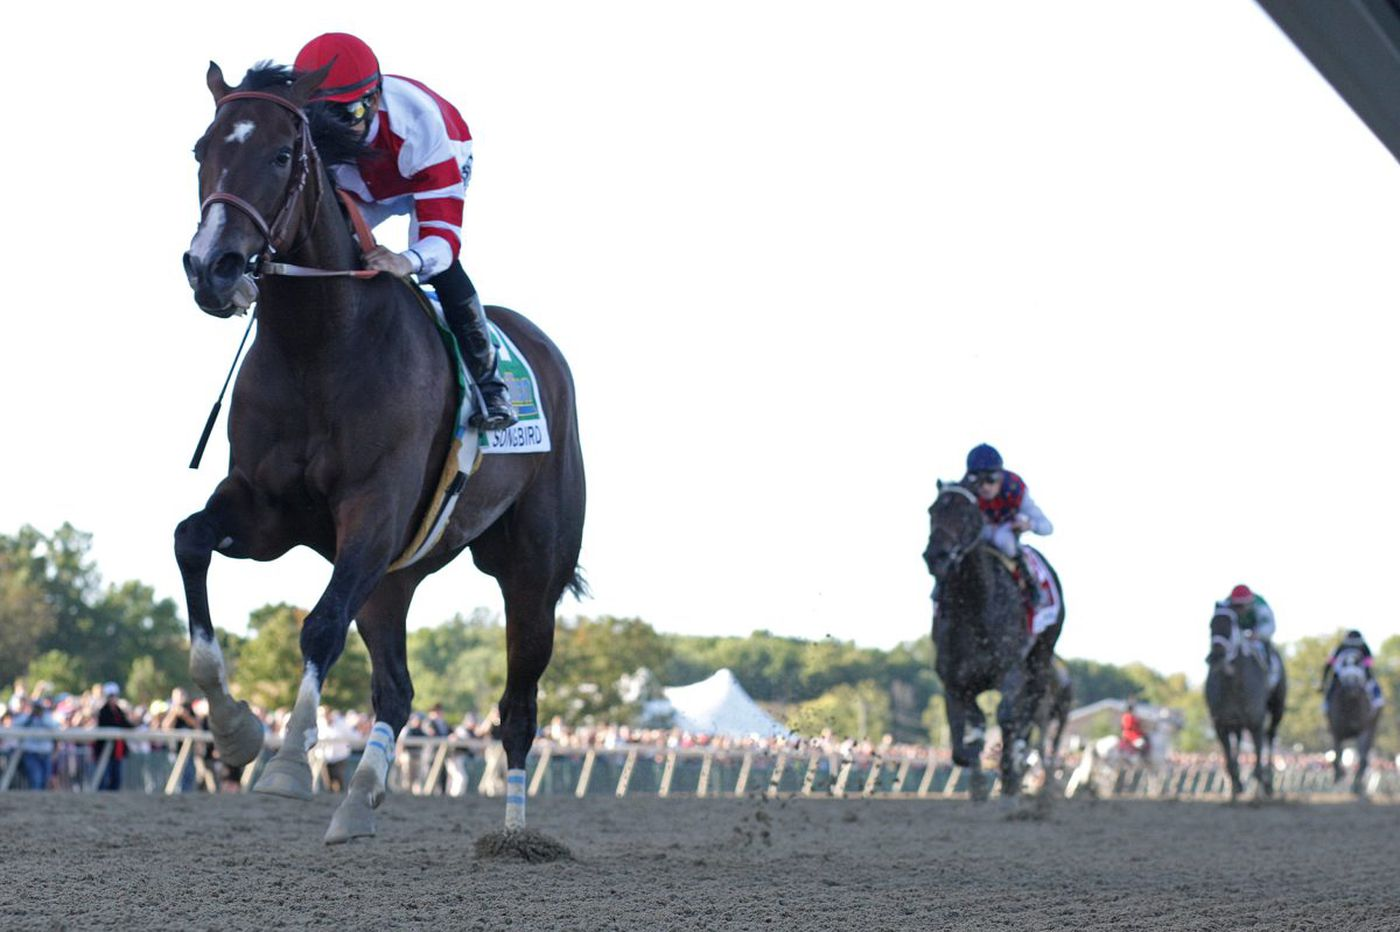 Delaware Park's opening day a unique horse-racing experience